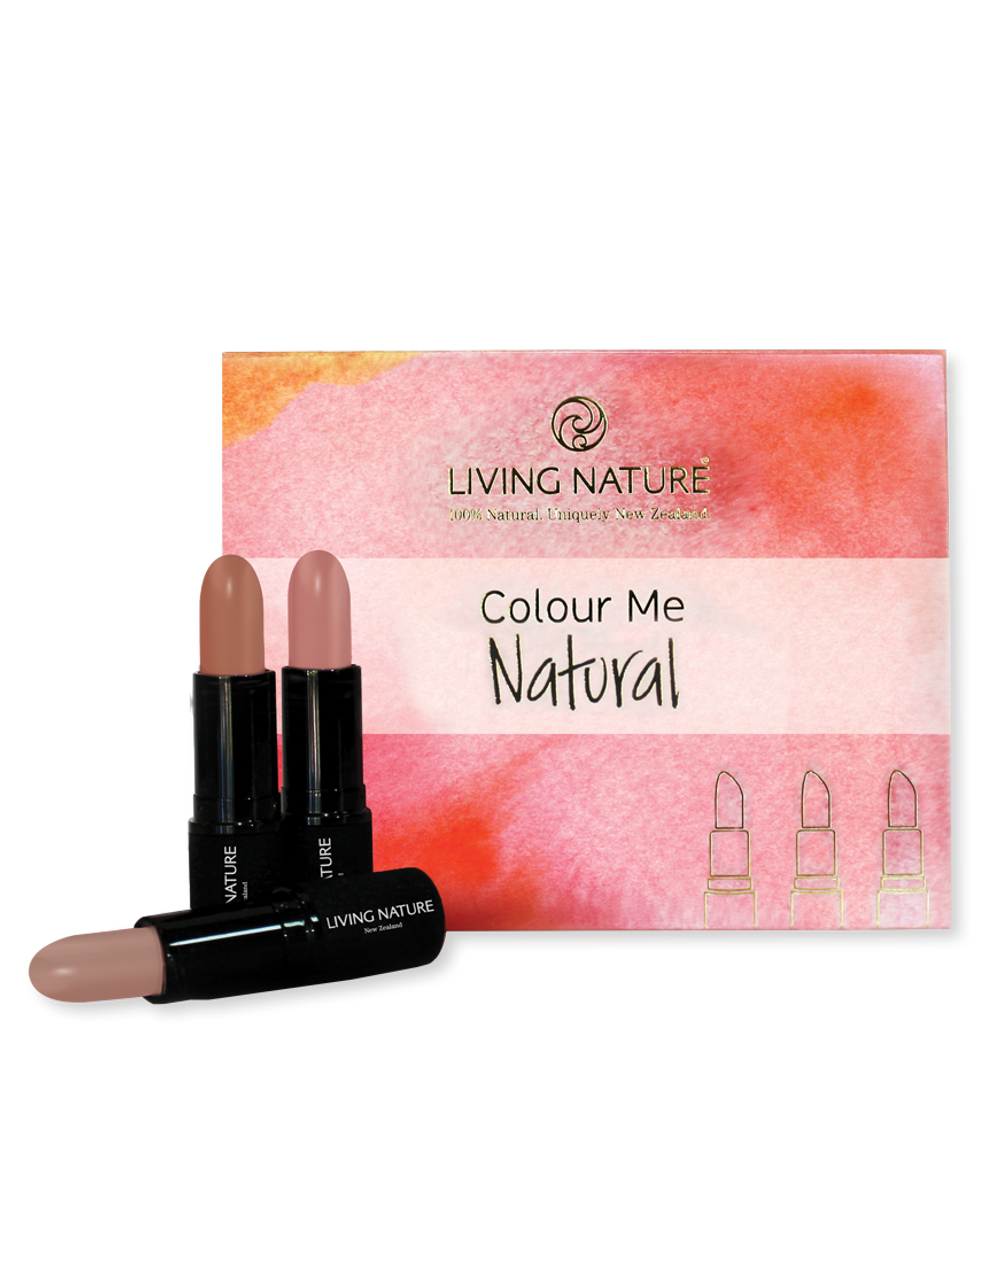 Living Nature - Colour Me Natural - 3 pack lipstick